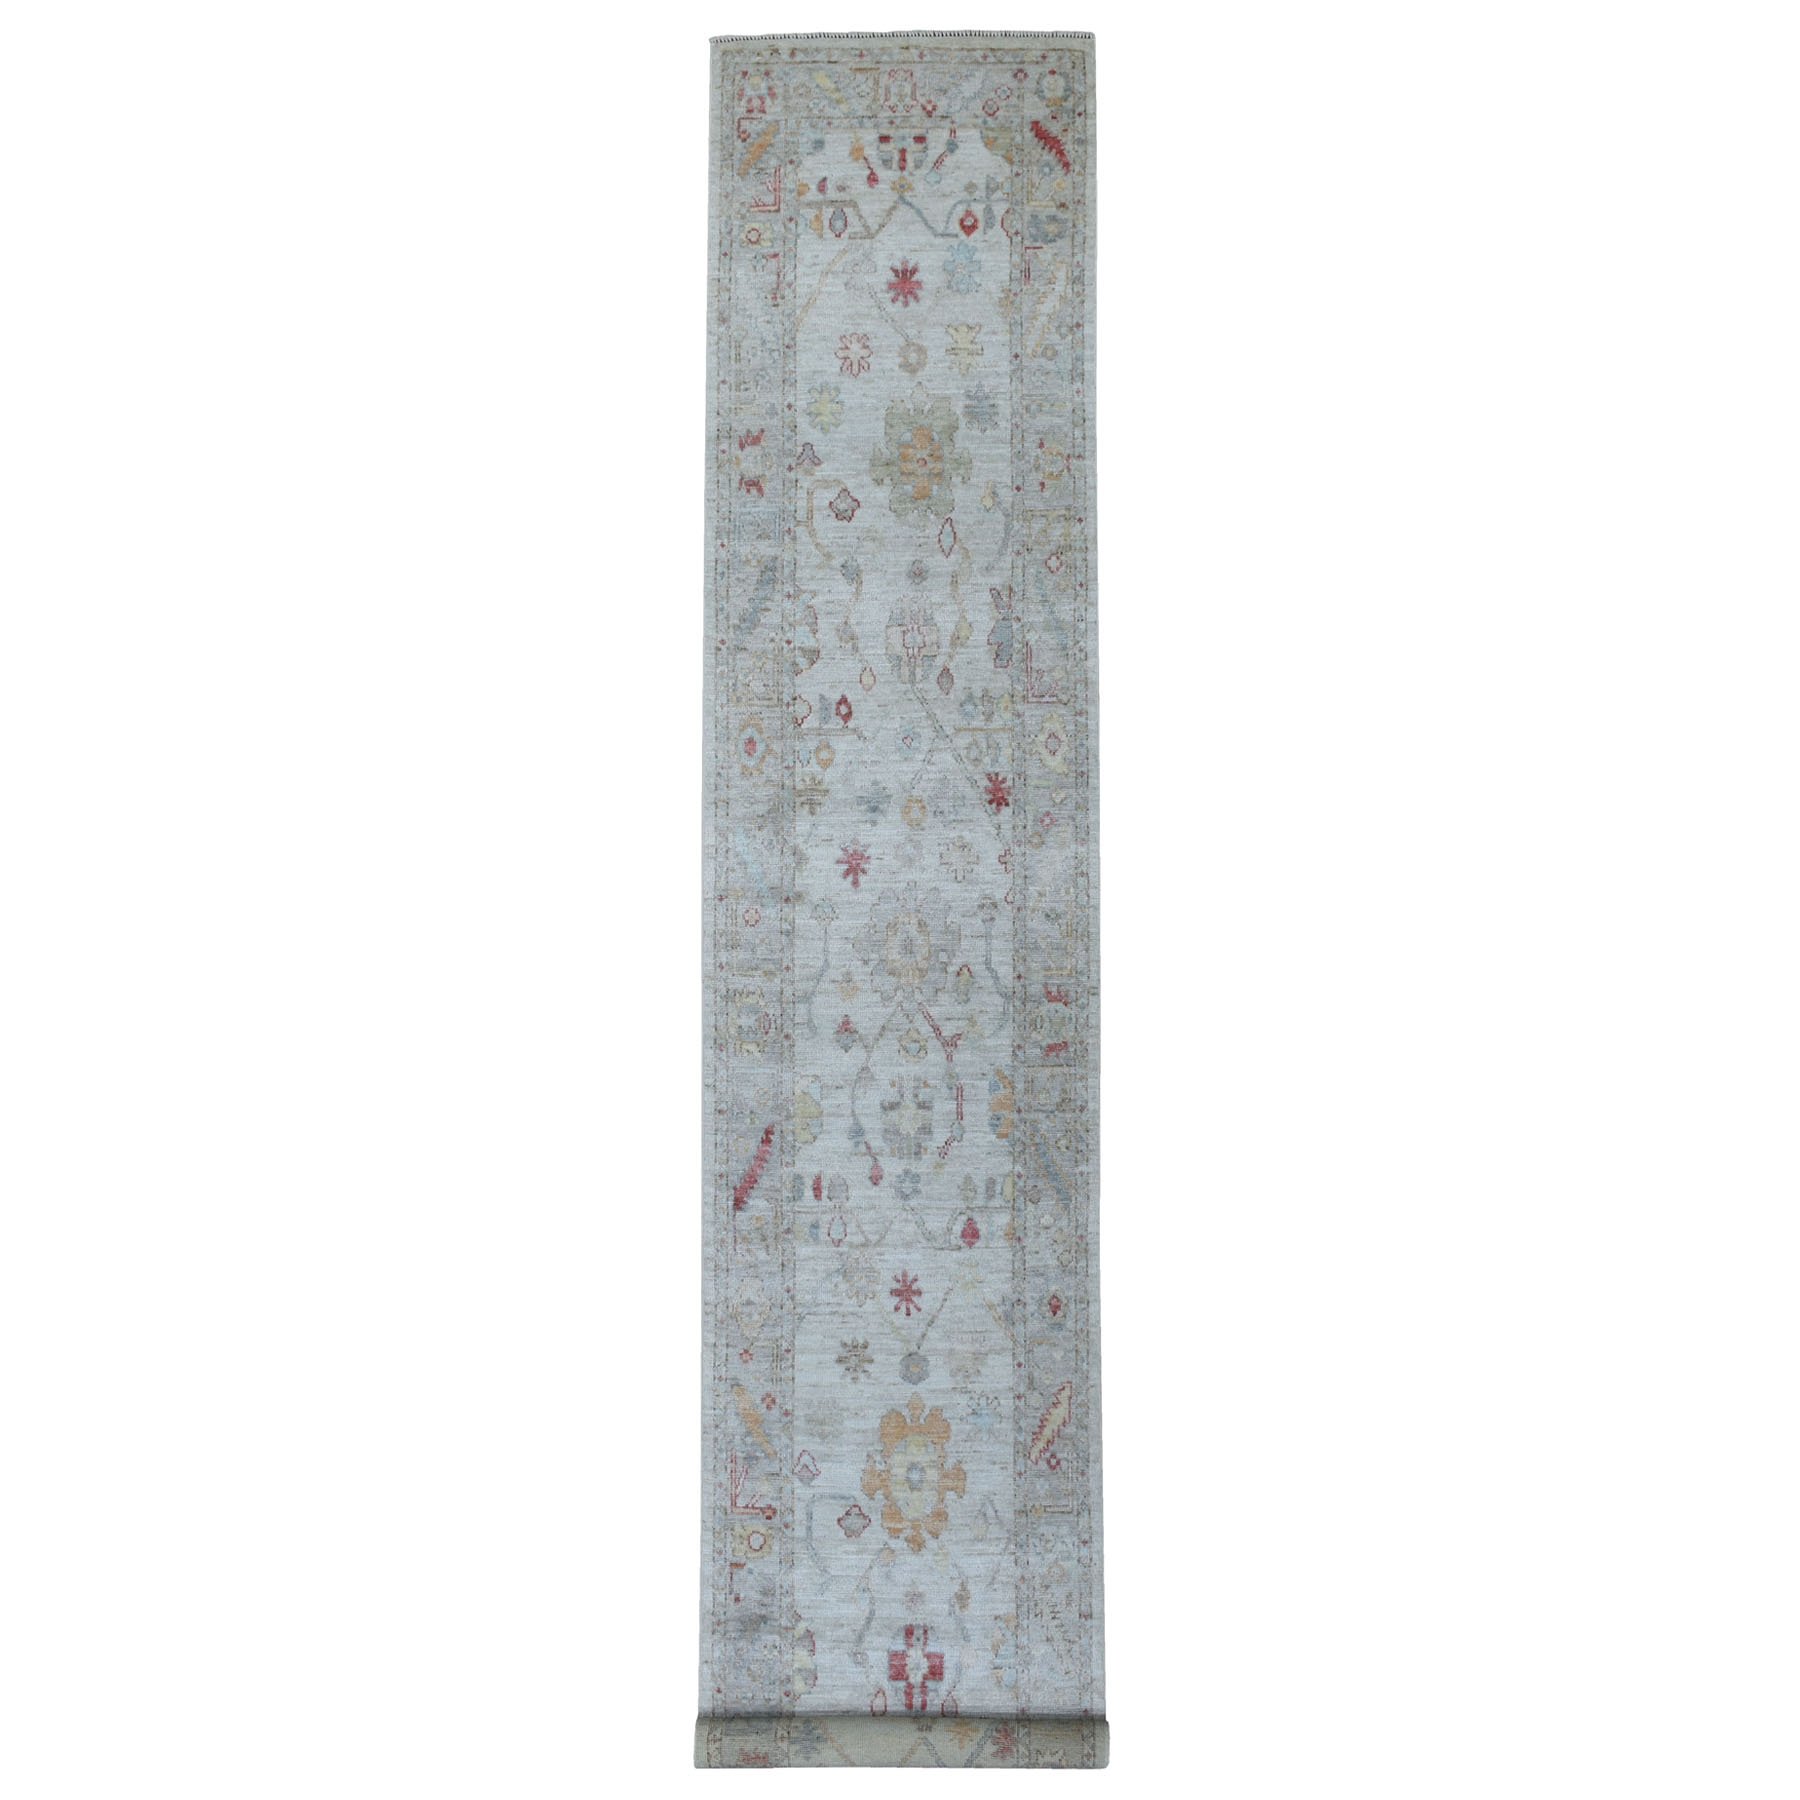 """2'9""""X16' Washed Out Gray Angora Oushak, Soft To The Touch Wool Pile Hand Knotted Oriental Xl Runner Rug moae6089"""